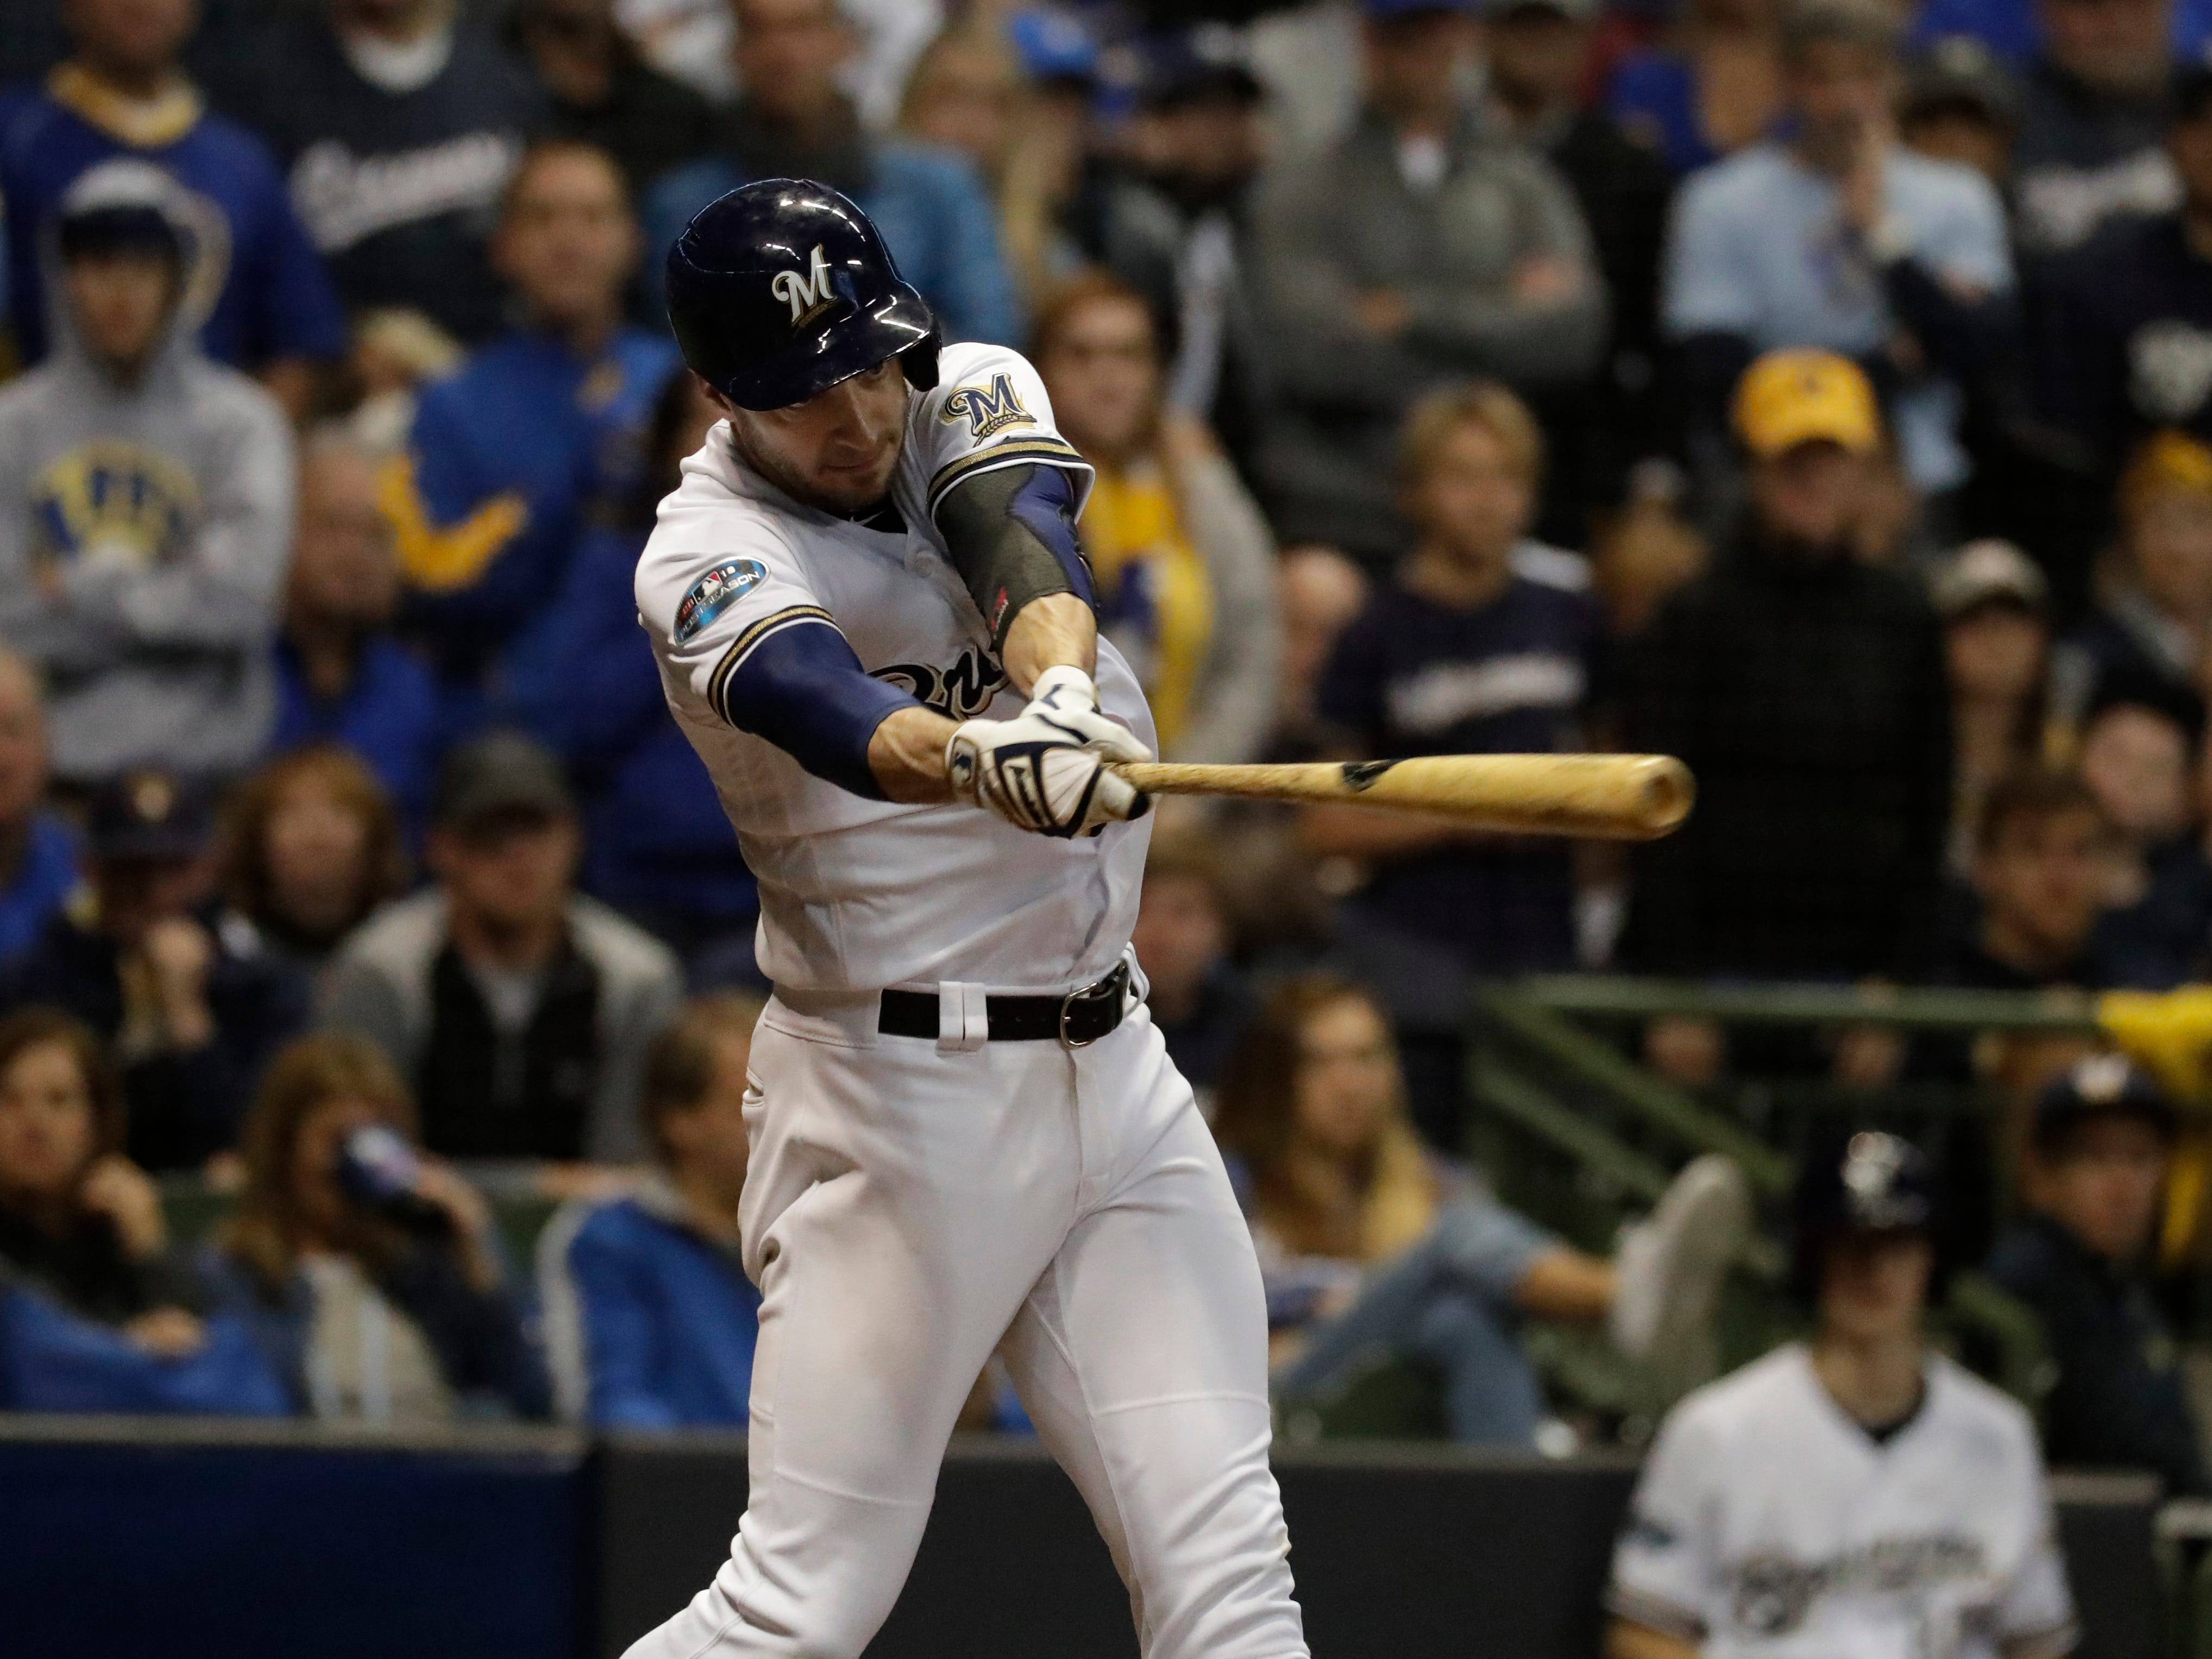 There'll be much about the 2018 Brewers season to savor, once the pain subsides